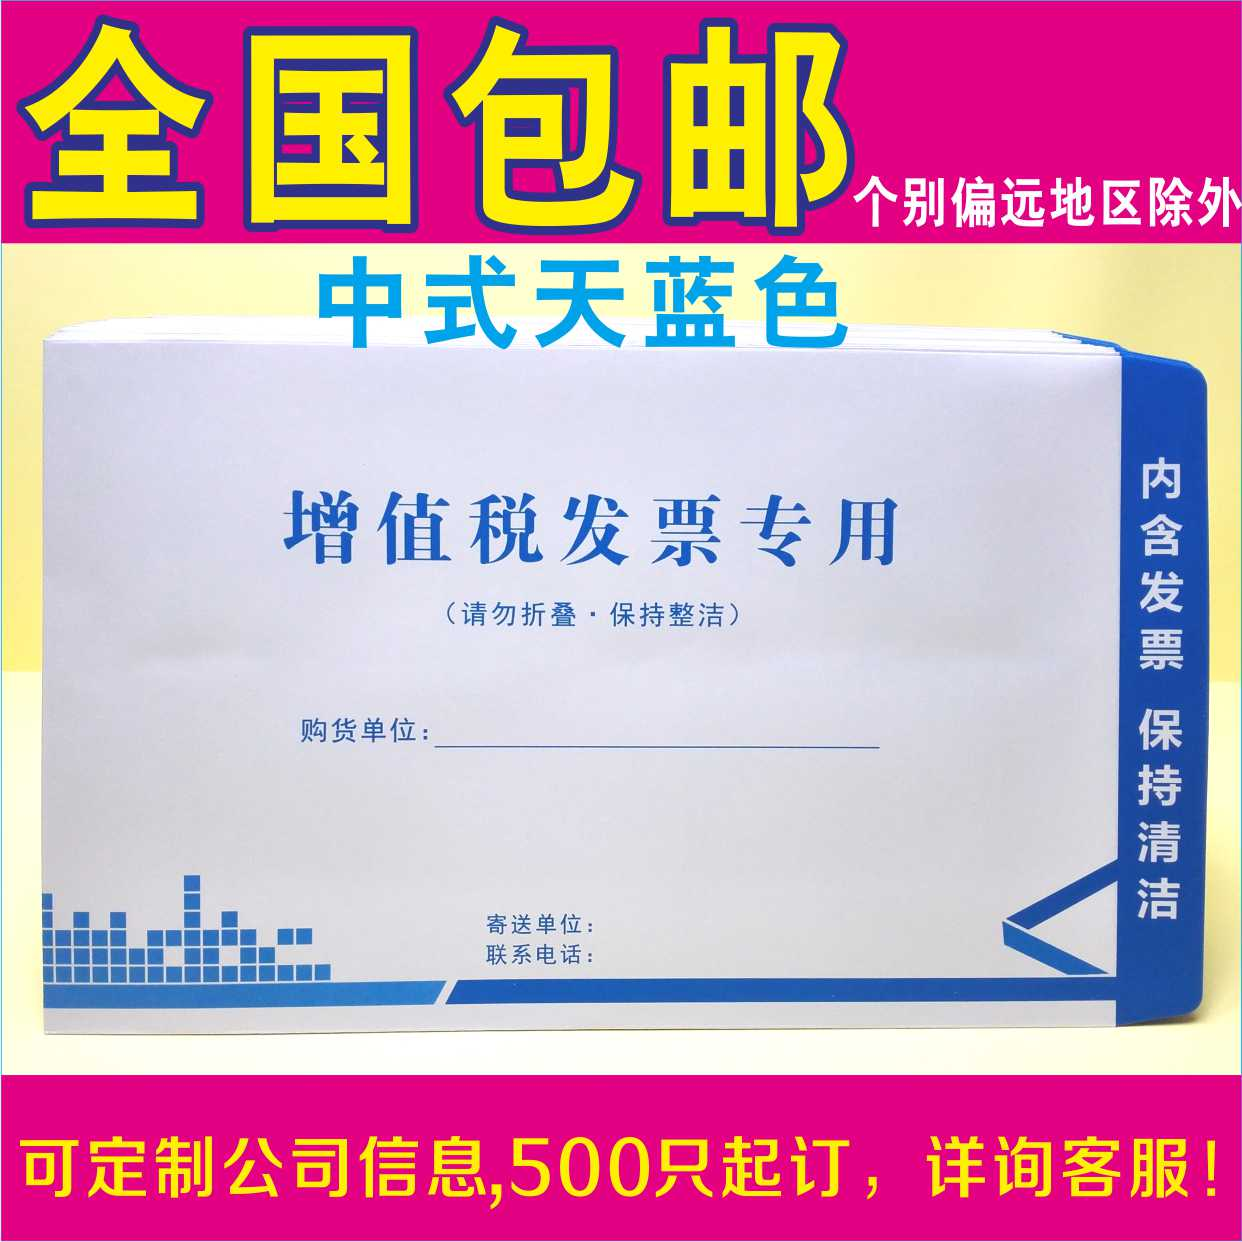 Special envelope for VAT invoice, special bag for bill, VAT envelope can be customized